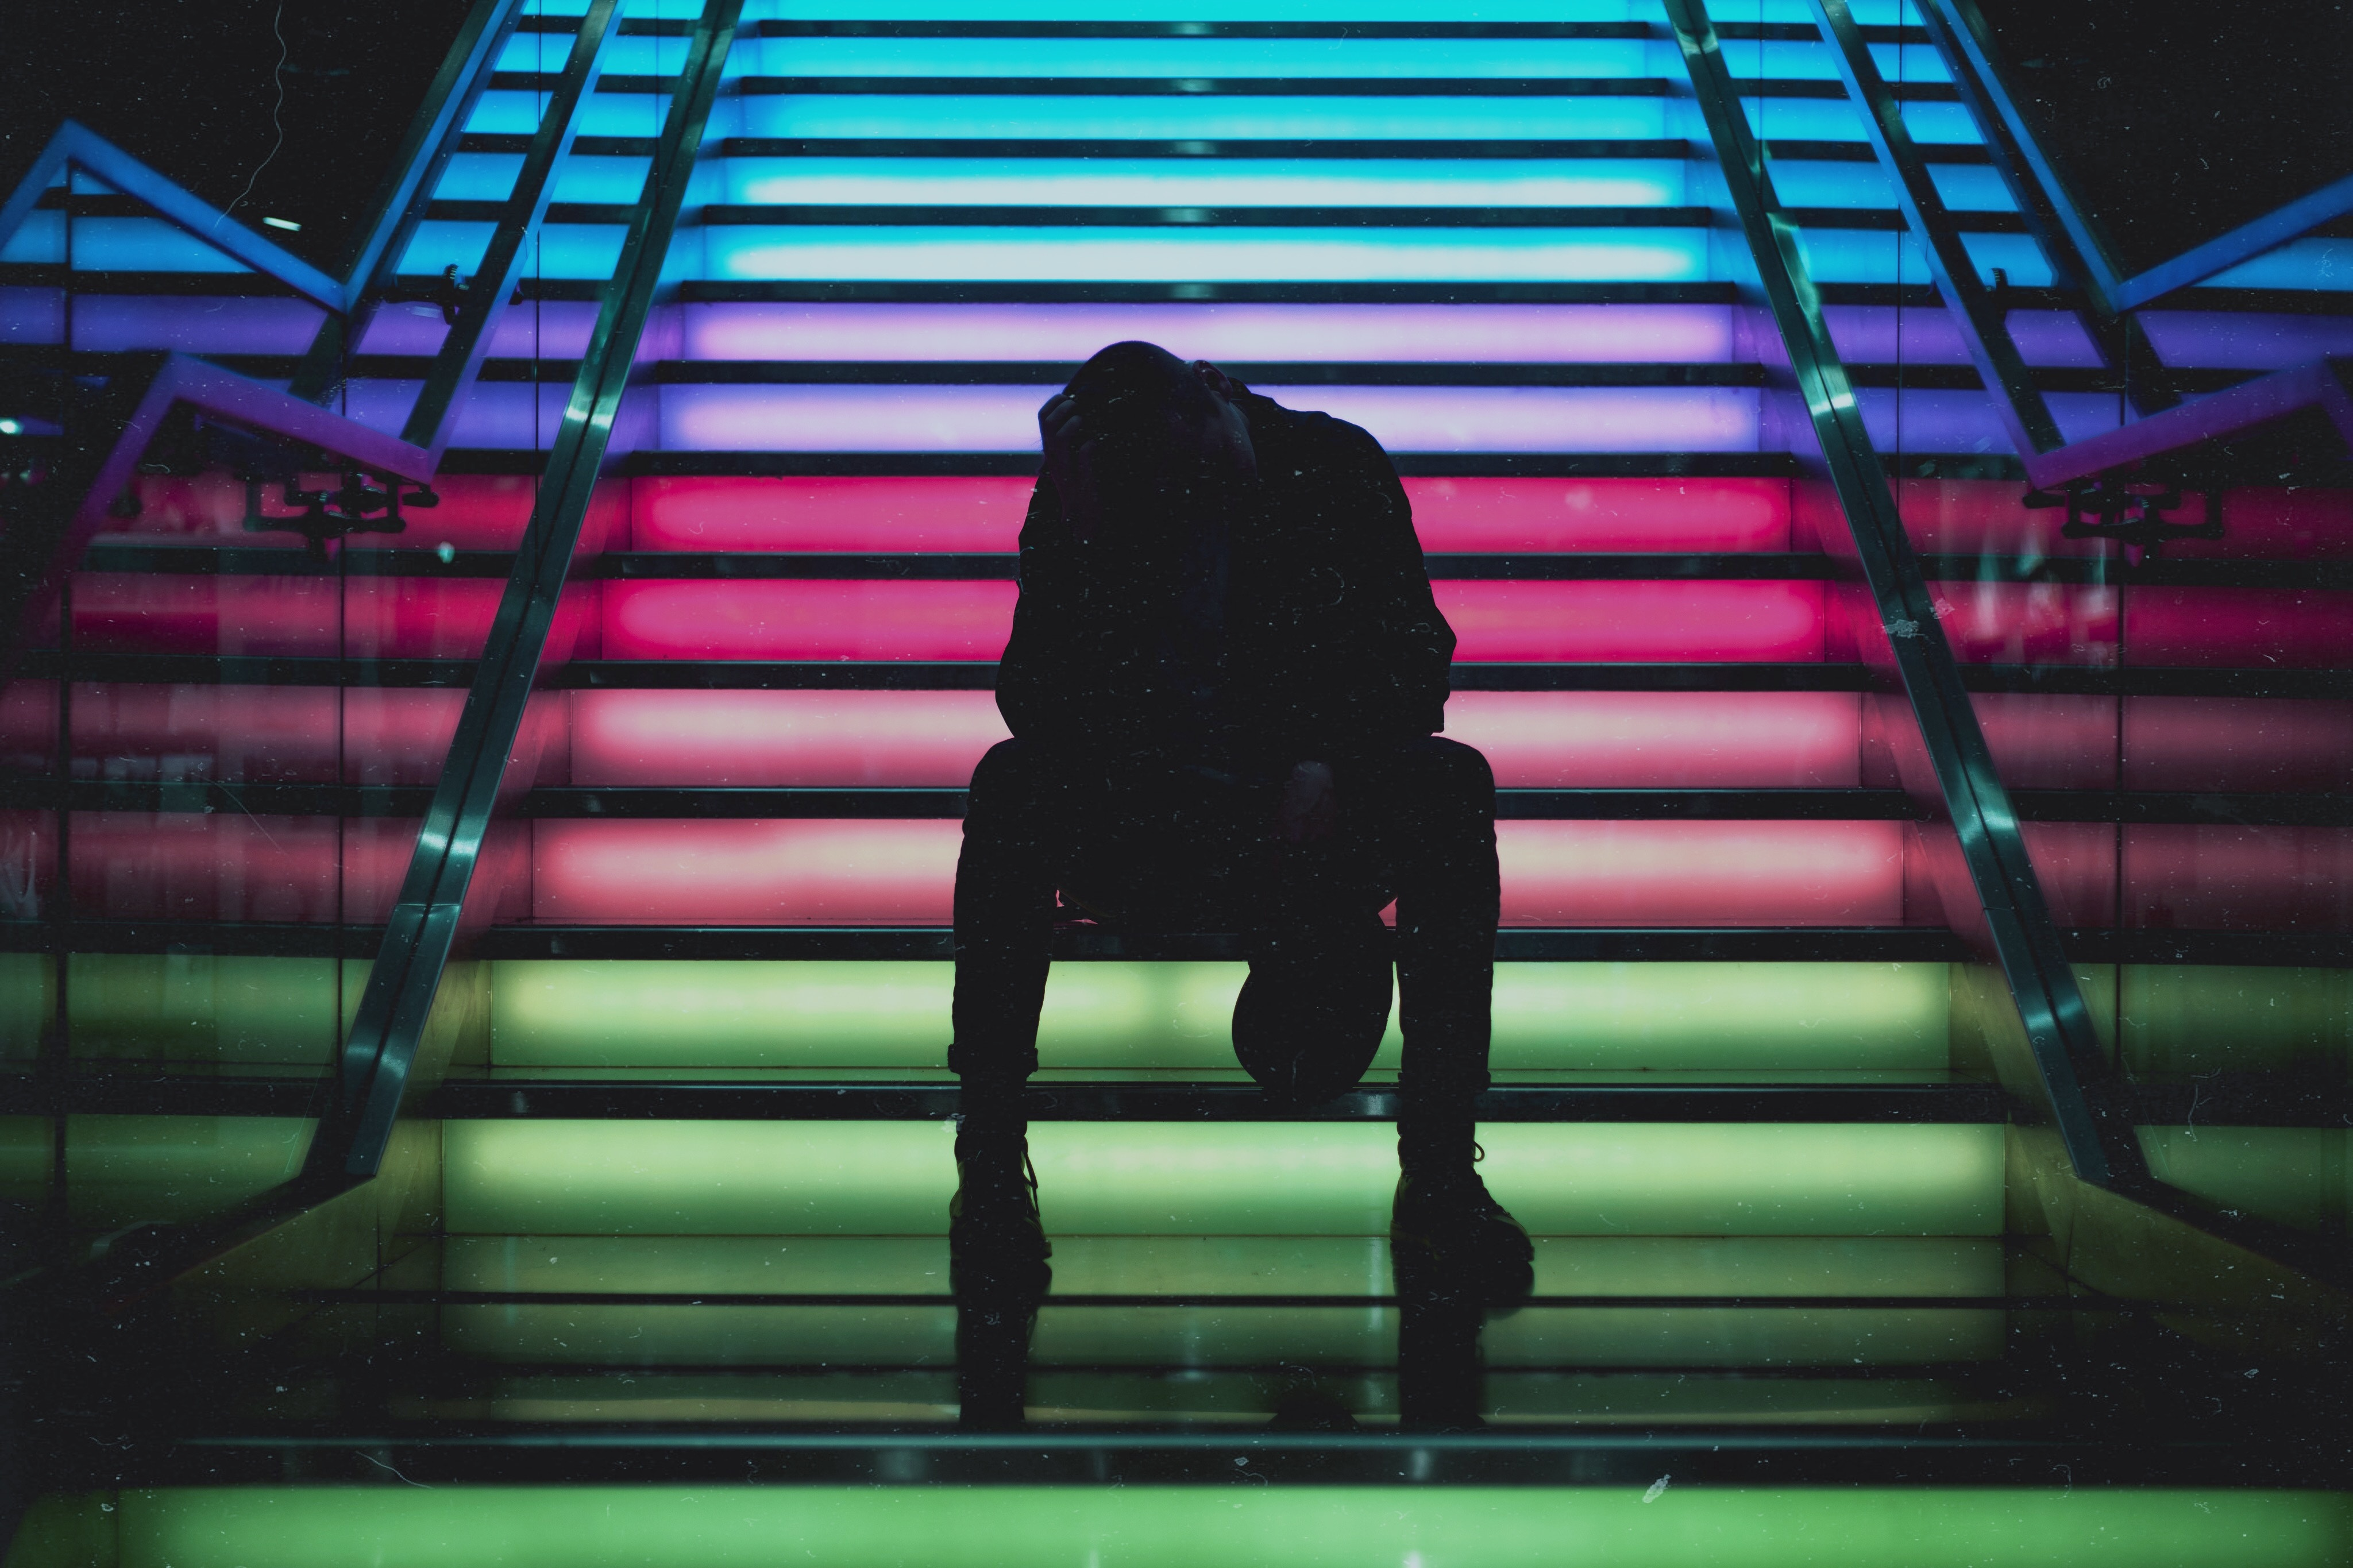 51770 download wallpaper Dark, Multicolored, Motley, Stairs, Ladder, Human, Person screensavers and pictures for free